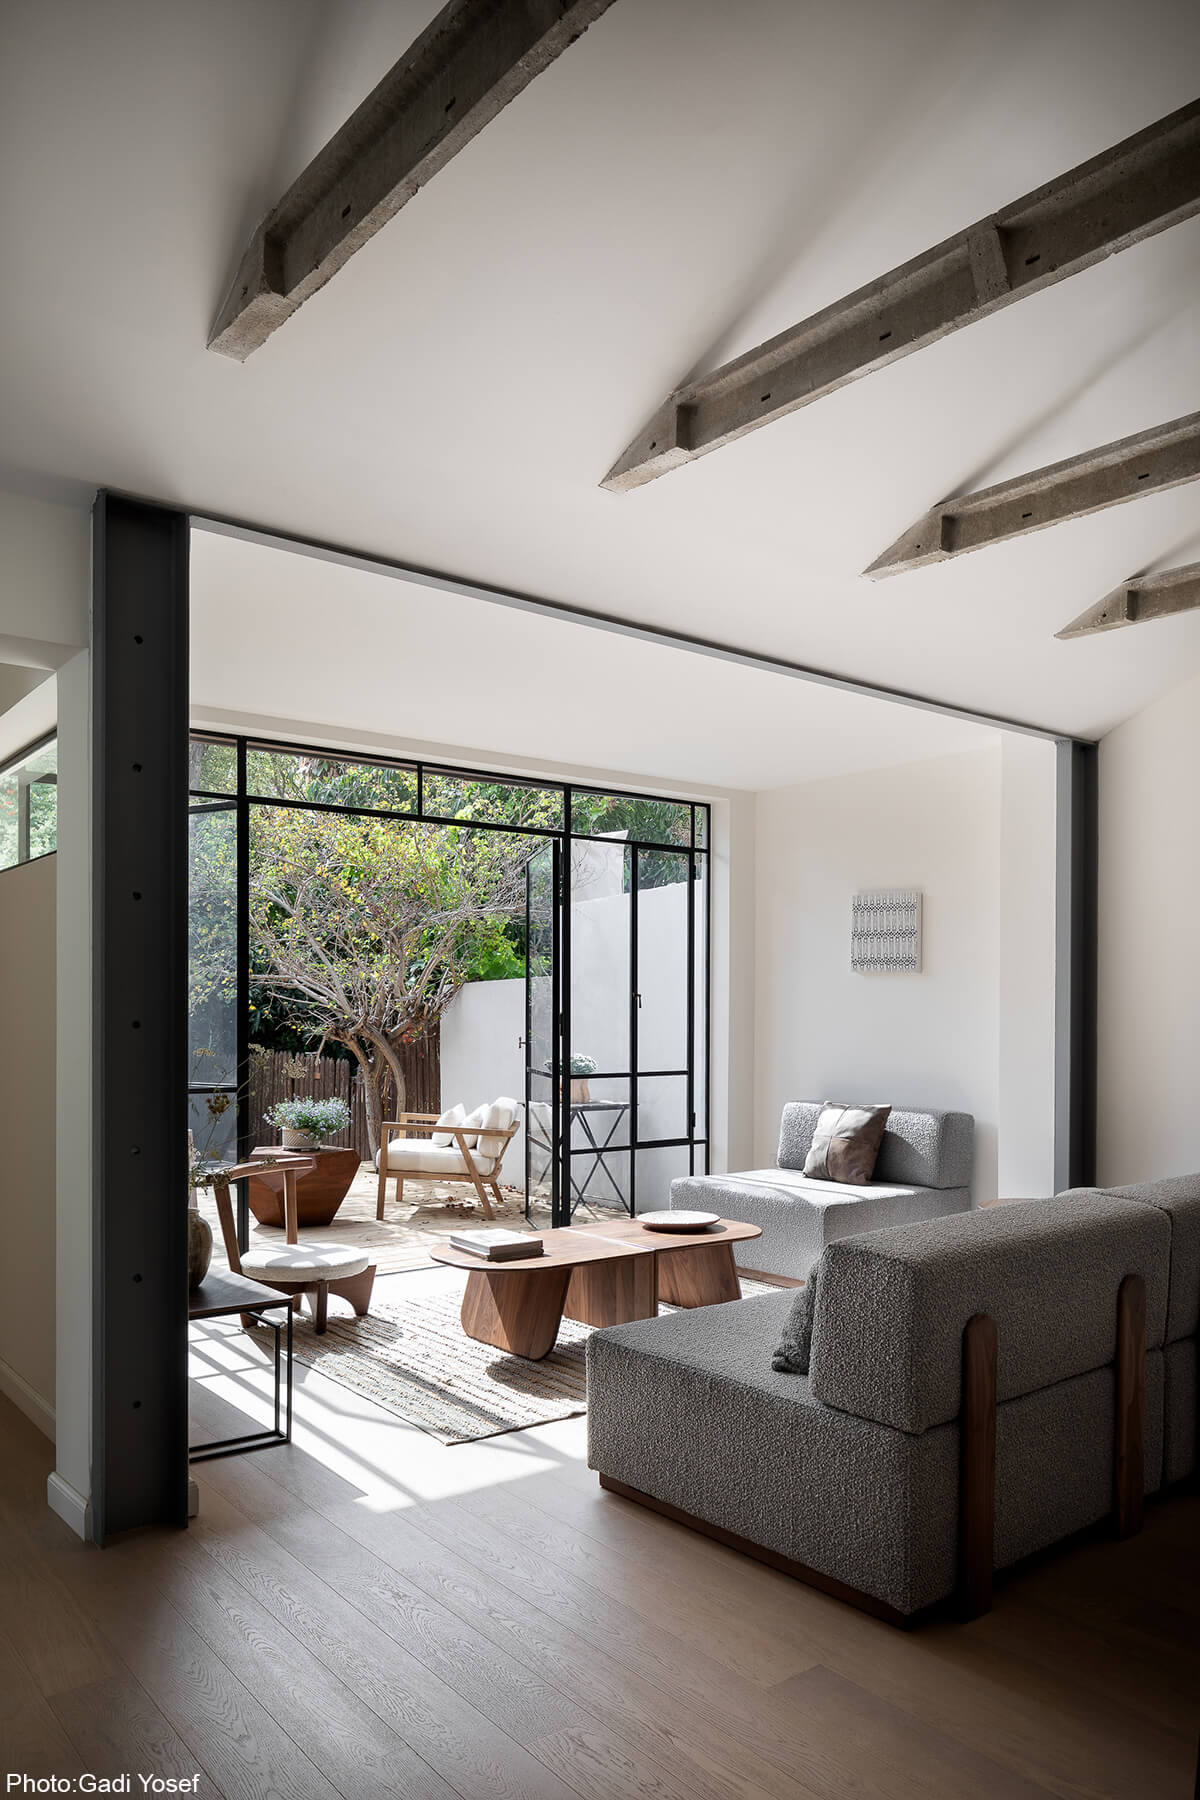 A maximum window wall was opened with two wide iron frame doors between the living area and the courtyard to gain maximum natural light